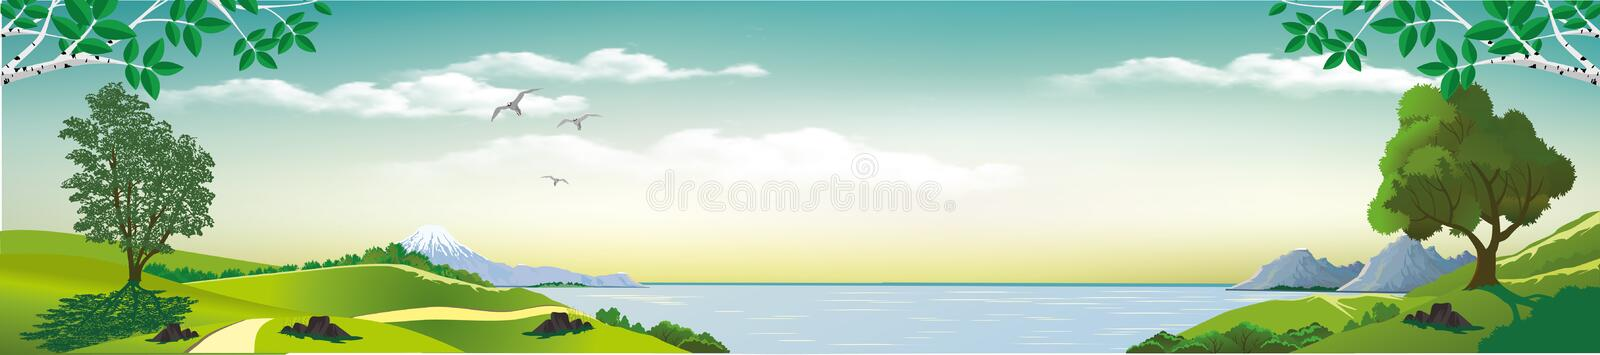 Panoramic landscape - Bay. Sea views from the hills. The trees on the hill. Wildlife. The mountains on the horizon. Vector illustration royalty free illustration